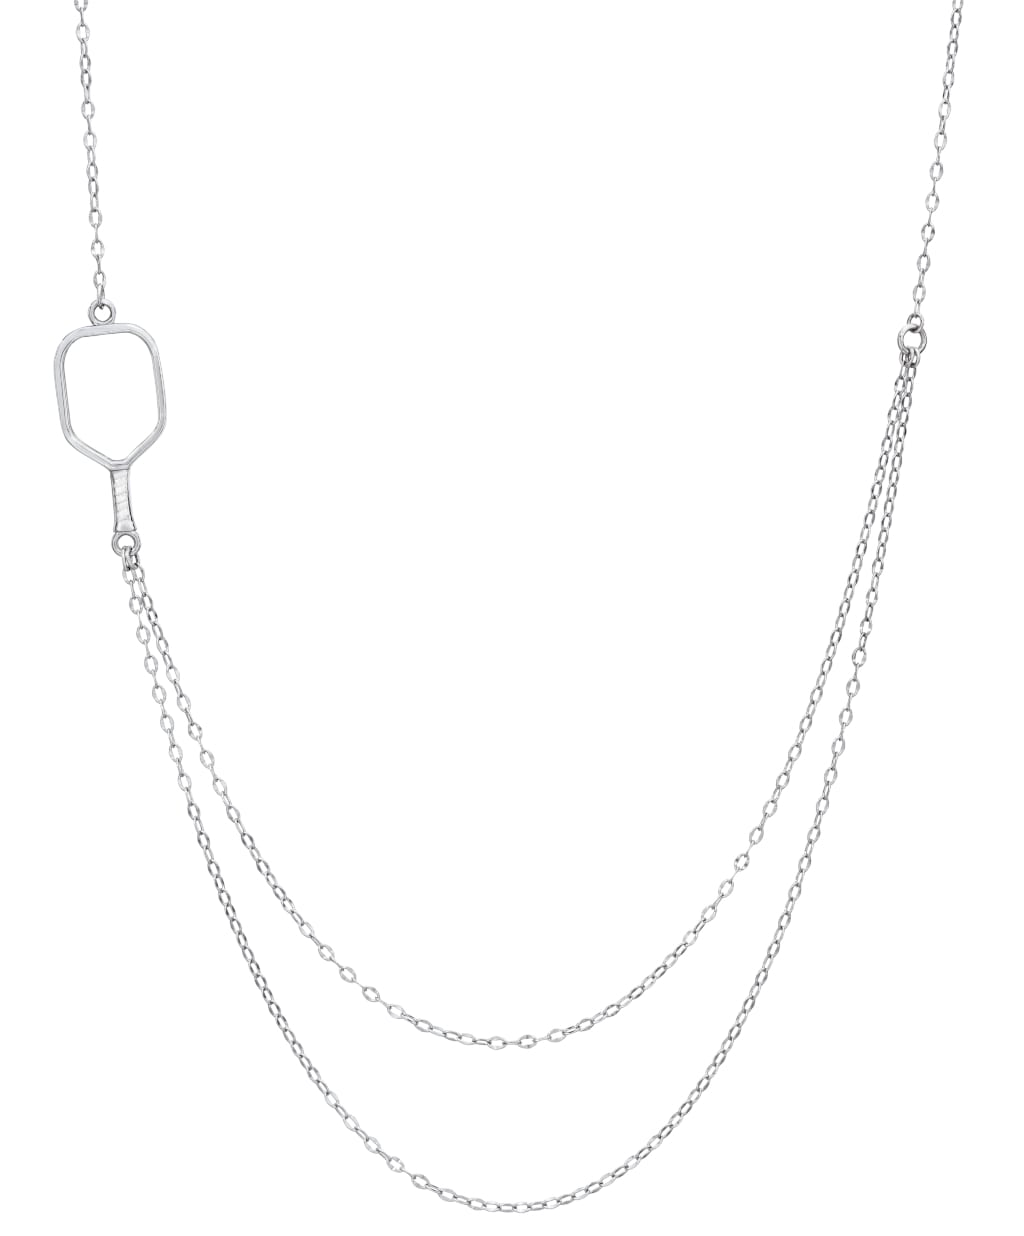 Pickleball Necklace | 2 Chain Offset Open Paddle in Sterling Silver